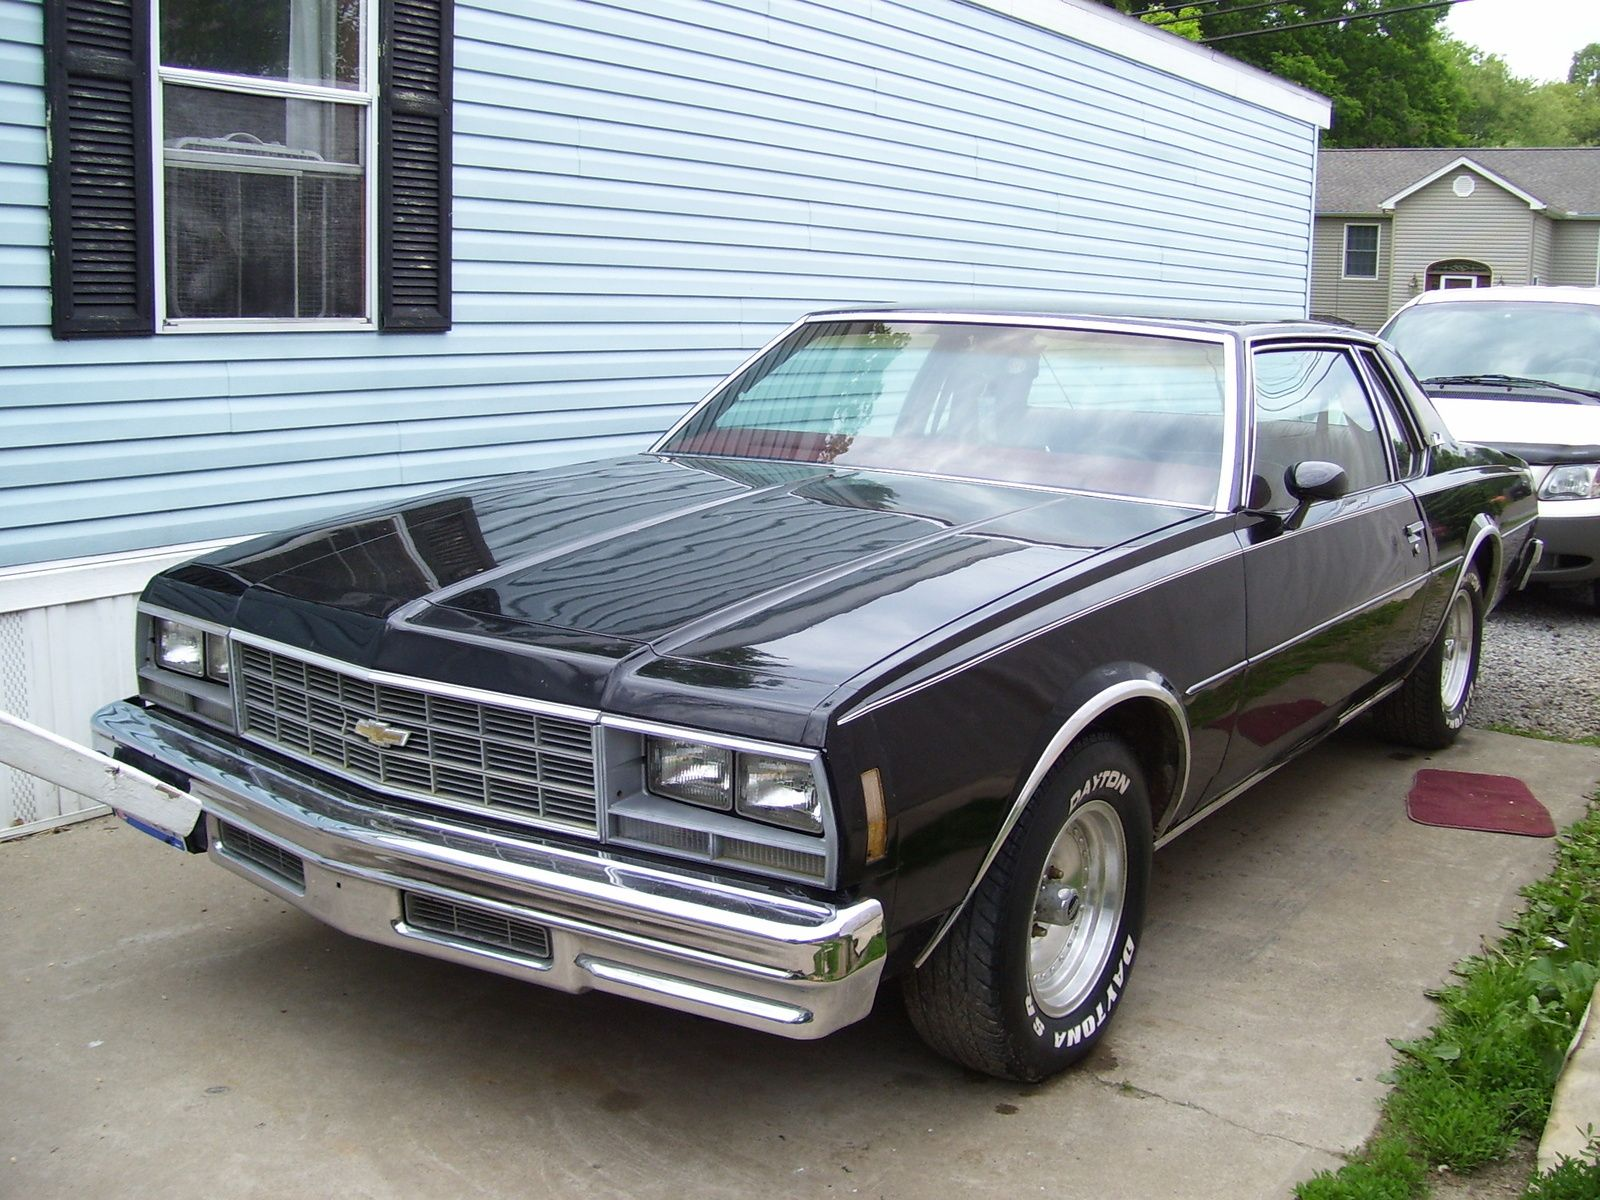 Impala Car | 1977 Chevrolet Impala - Pictures - my 1977 impala ...